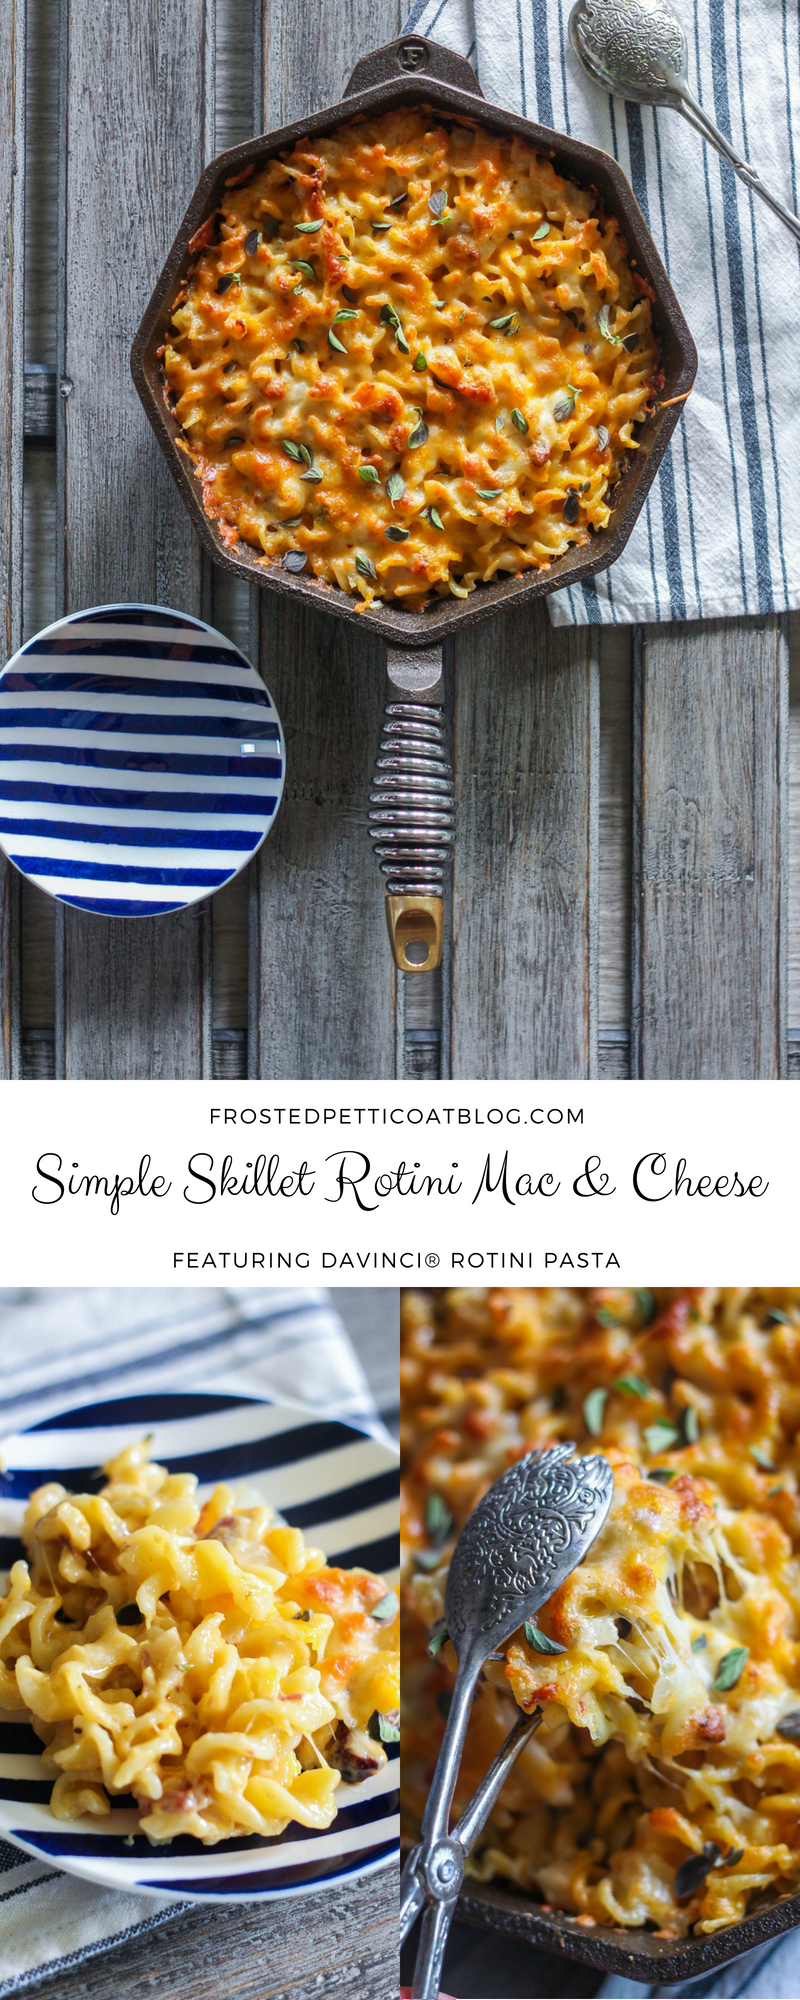 Simple Skillet Rotini Mac Cheese Recipe - Simple Skillet Rotini Mac & Cheese